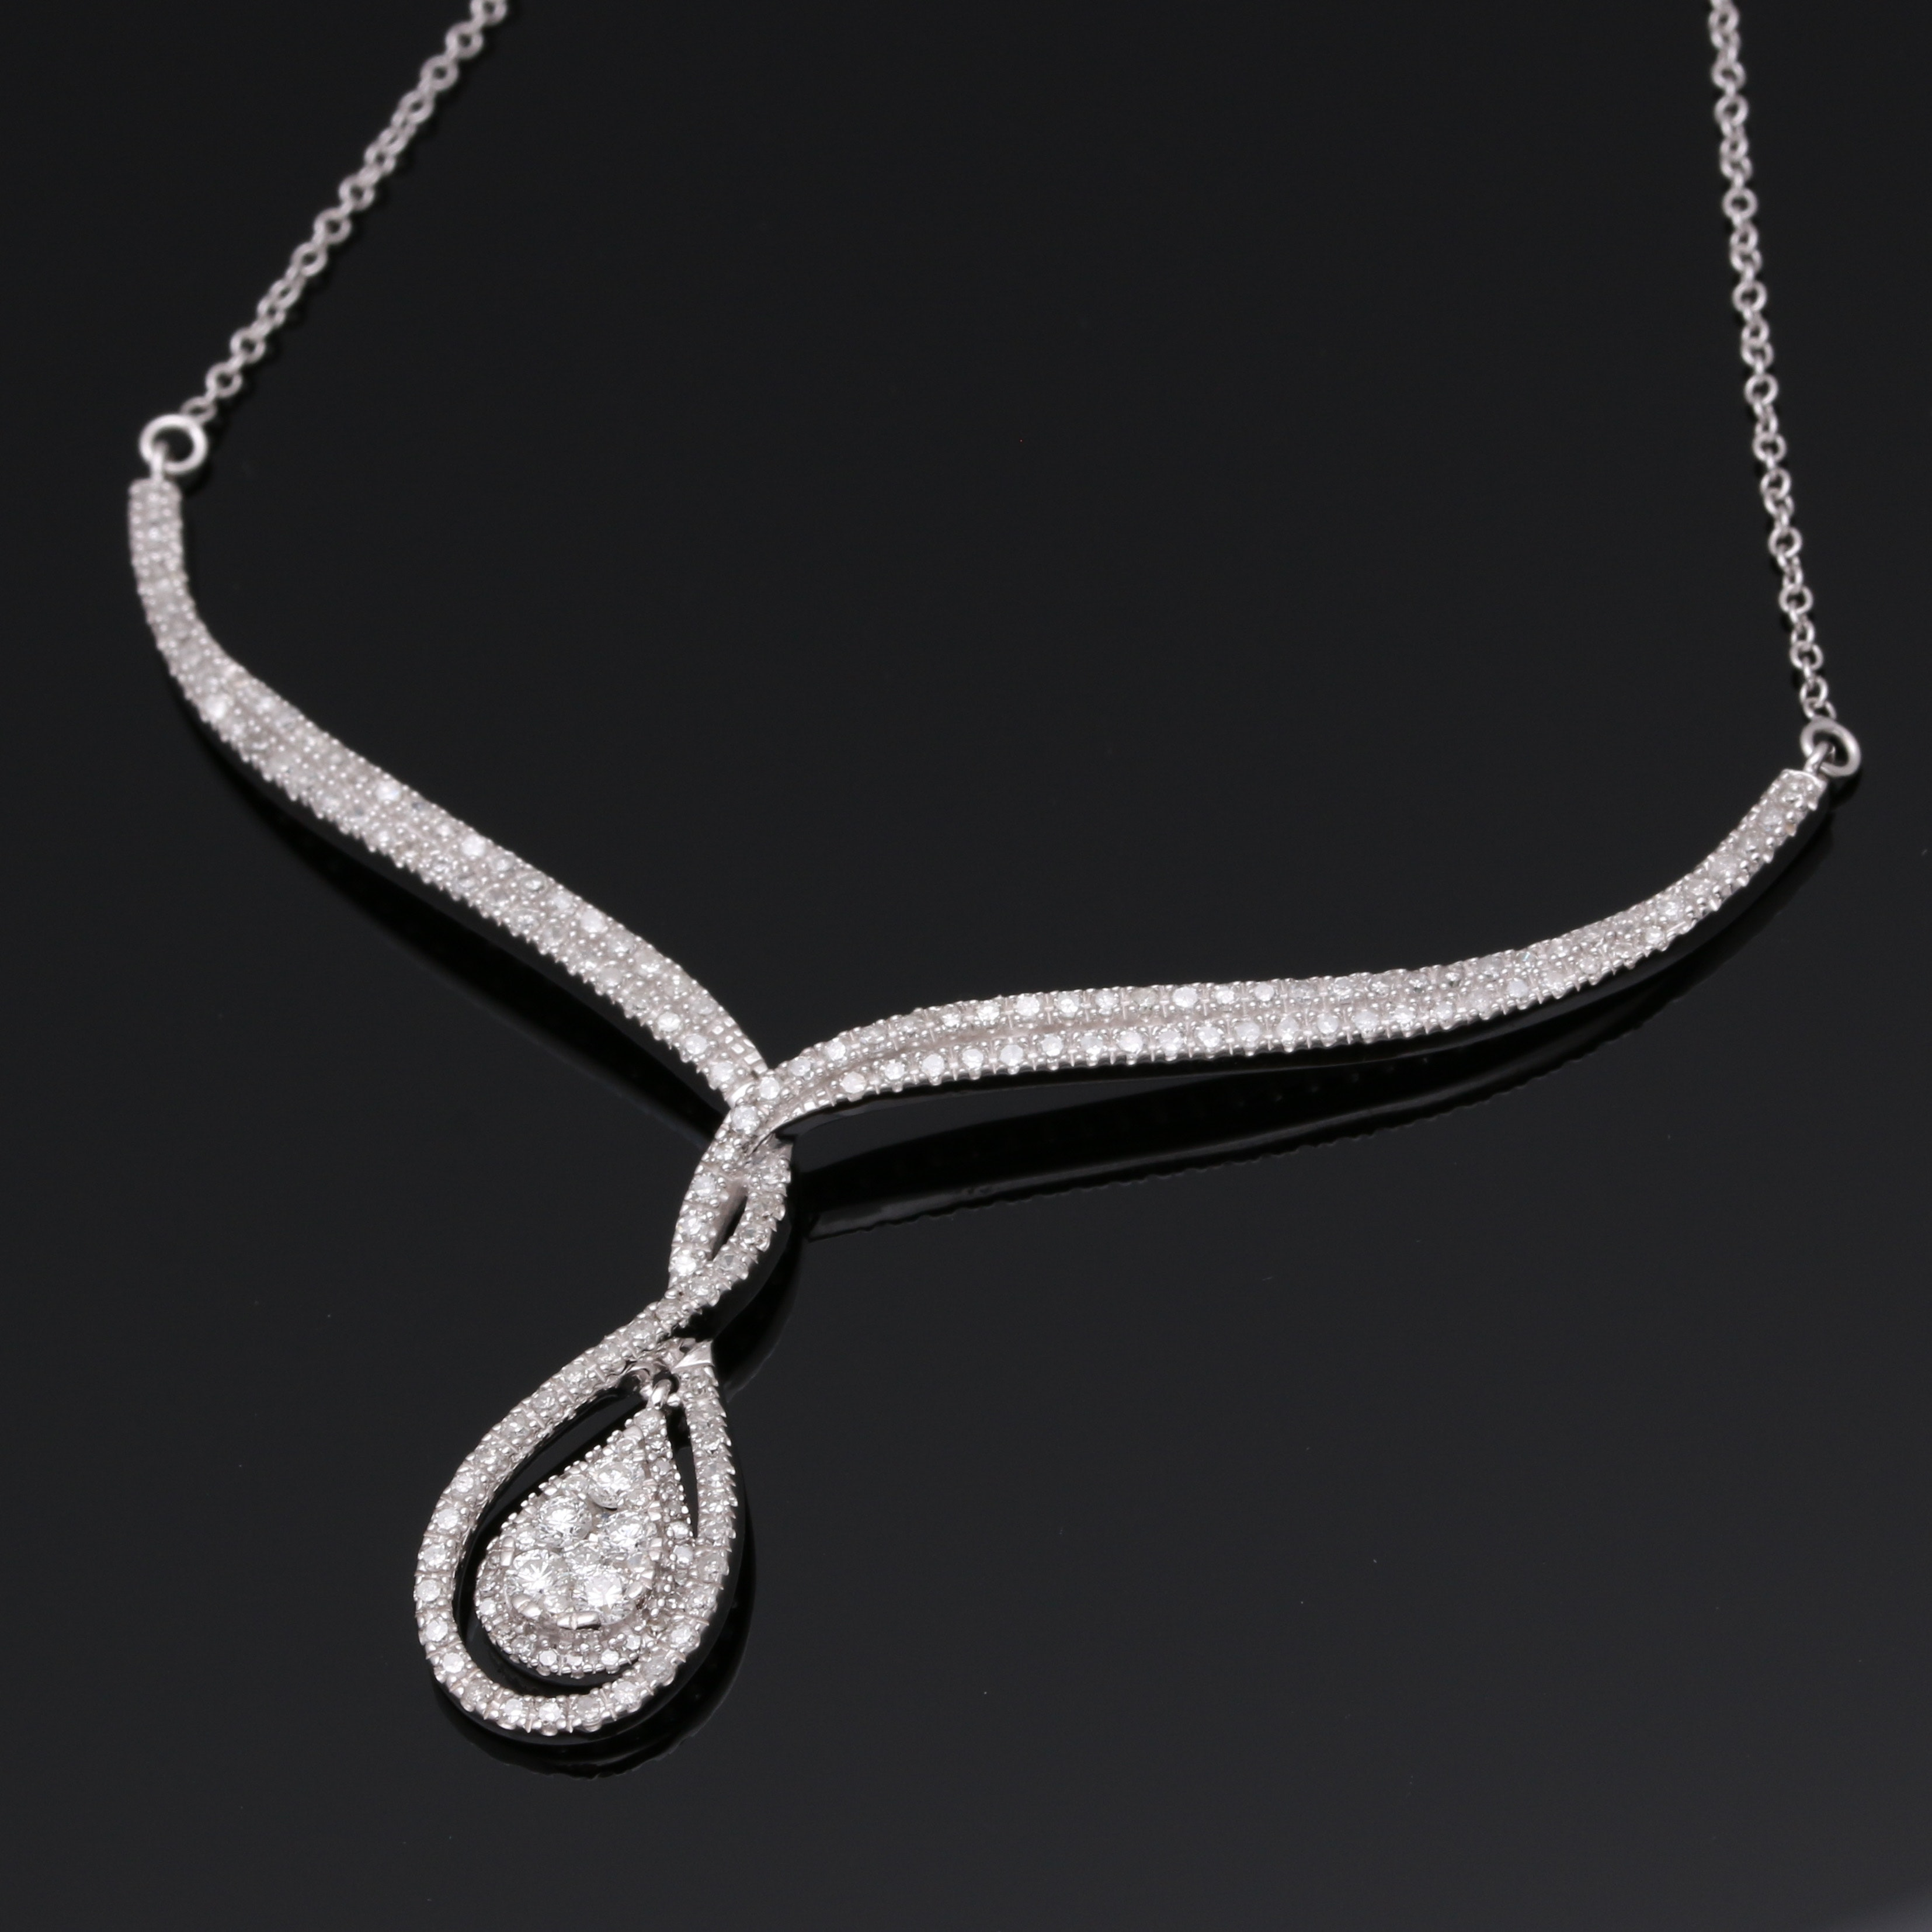 14K White Gold 1.28 CTW Diamond Necklace